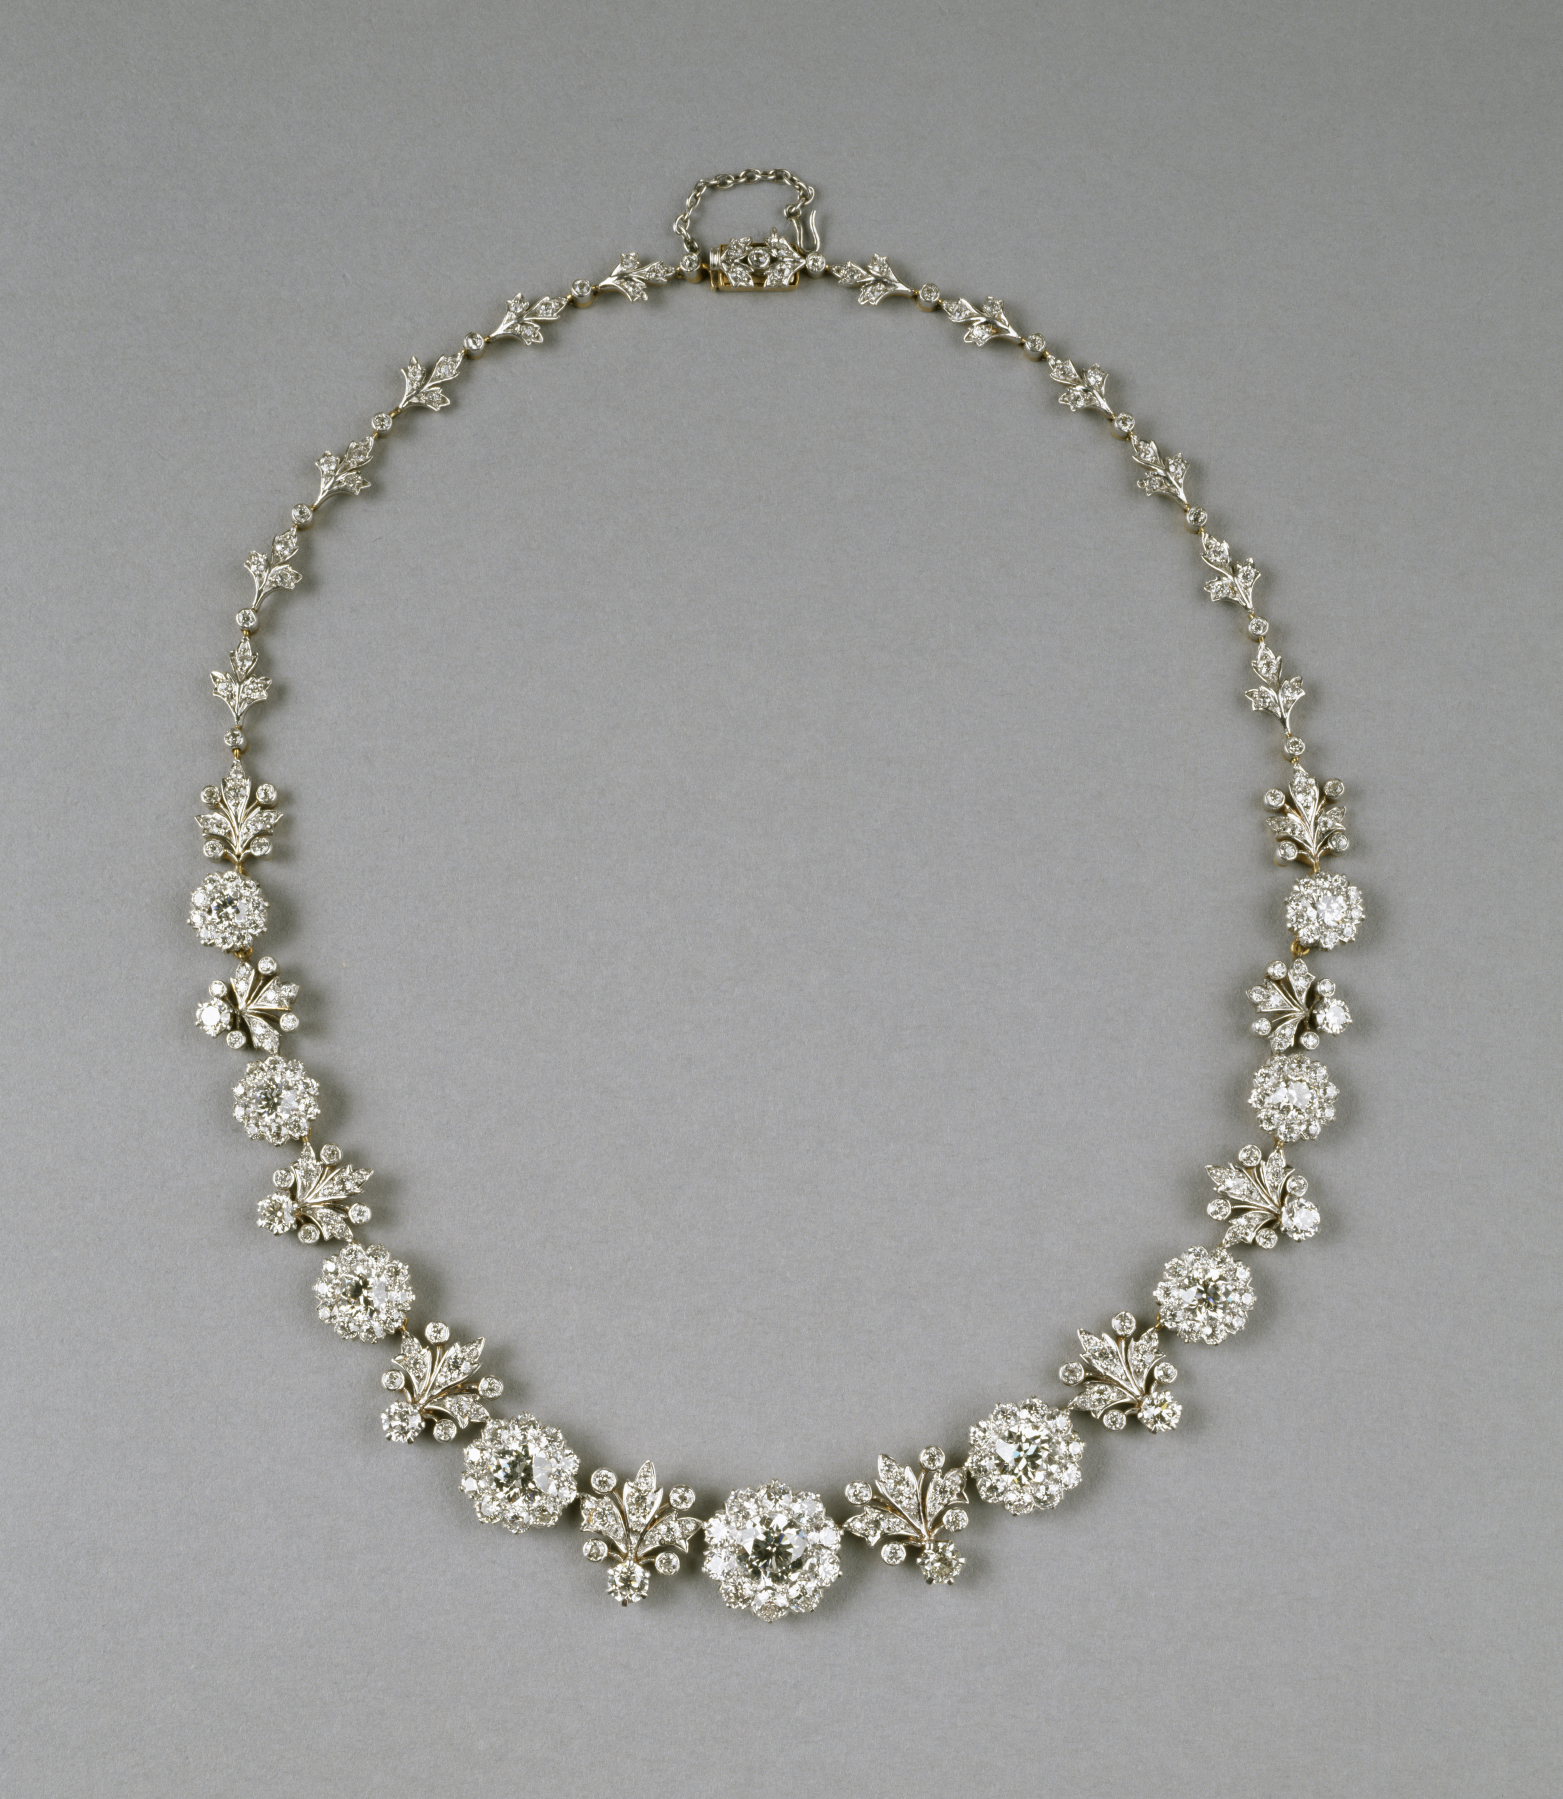 Tiffany co. Platinum necklaces and